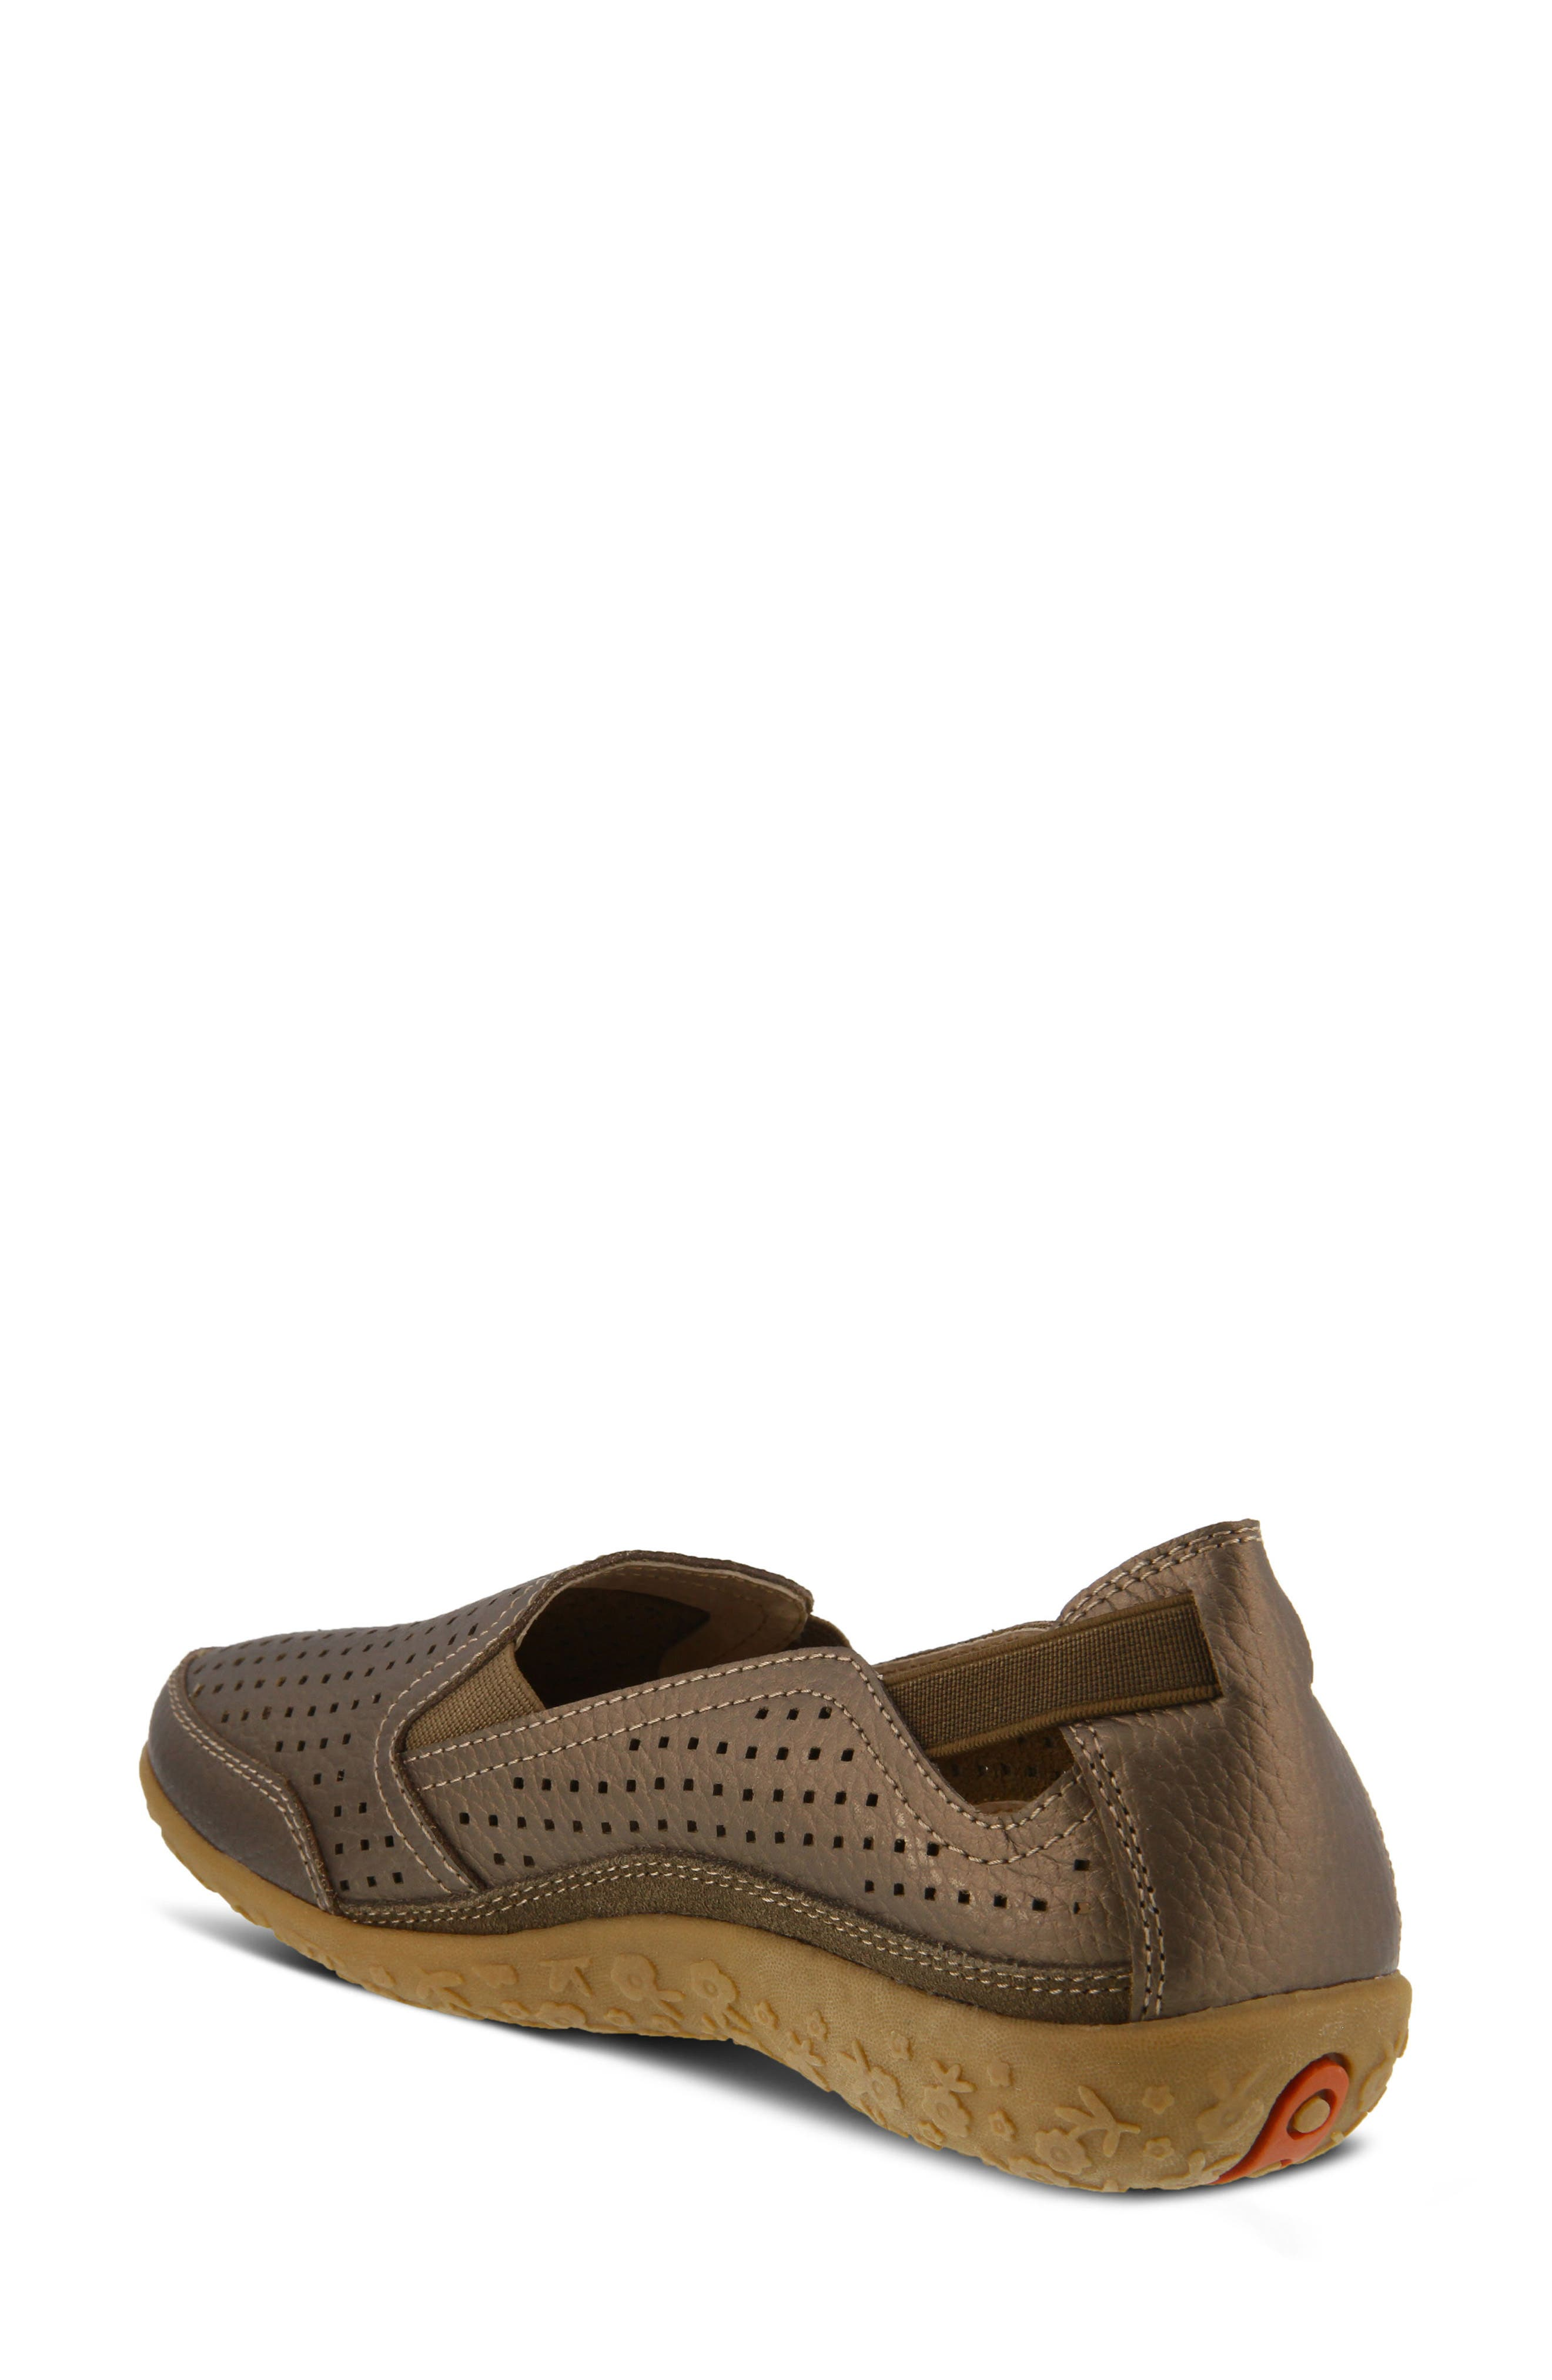 Juhi Loafer,                             Alternate thumbnail 2, color,                             Bronze Leather